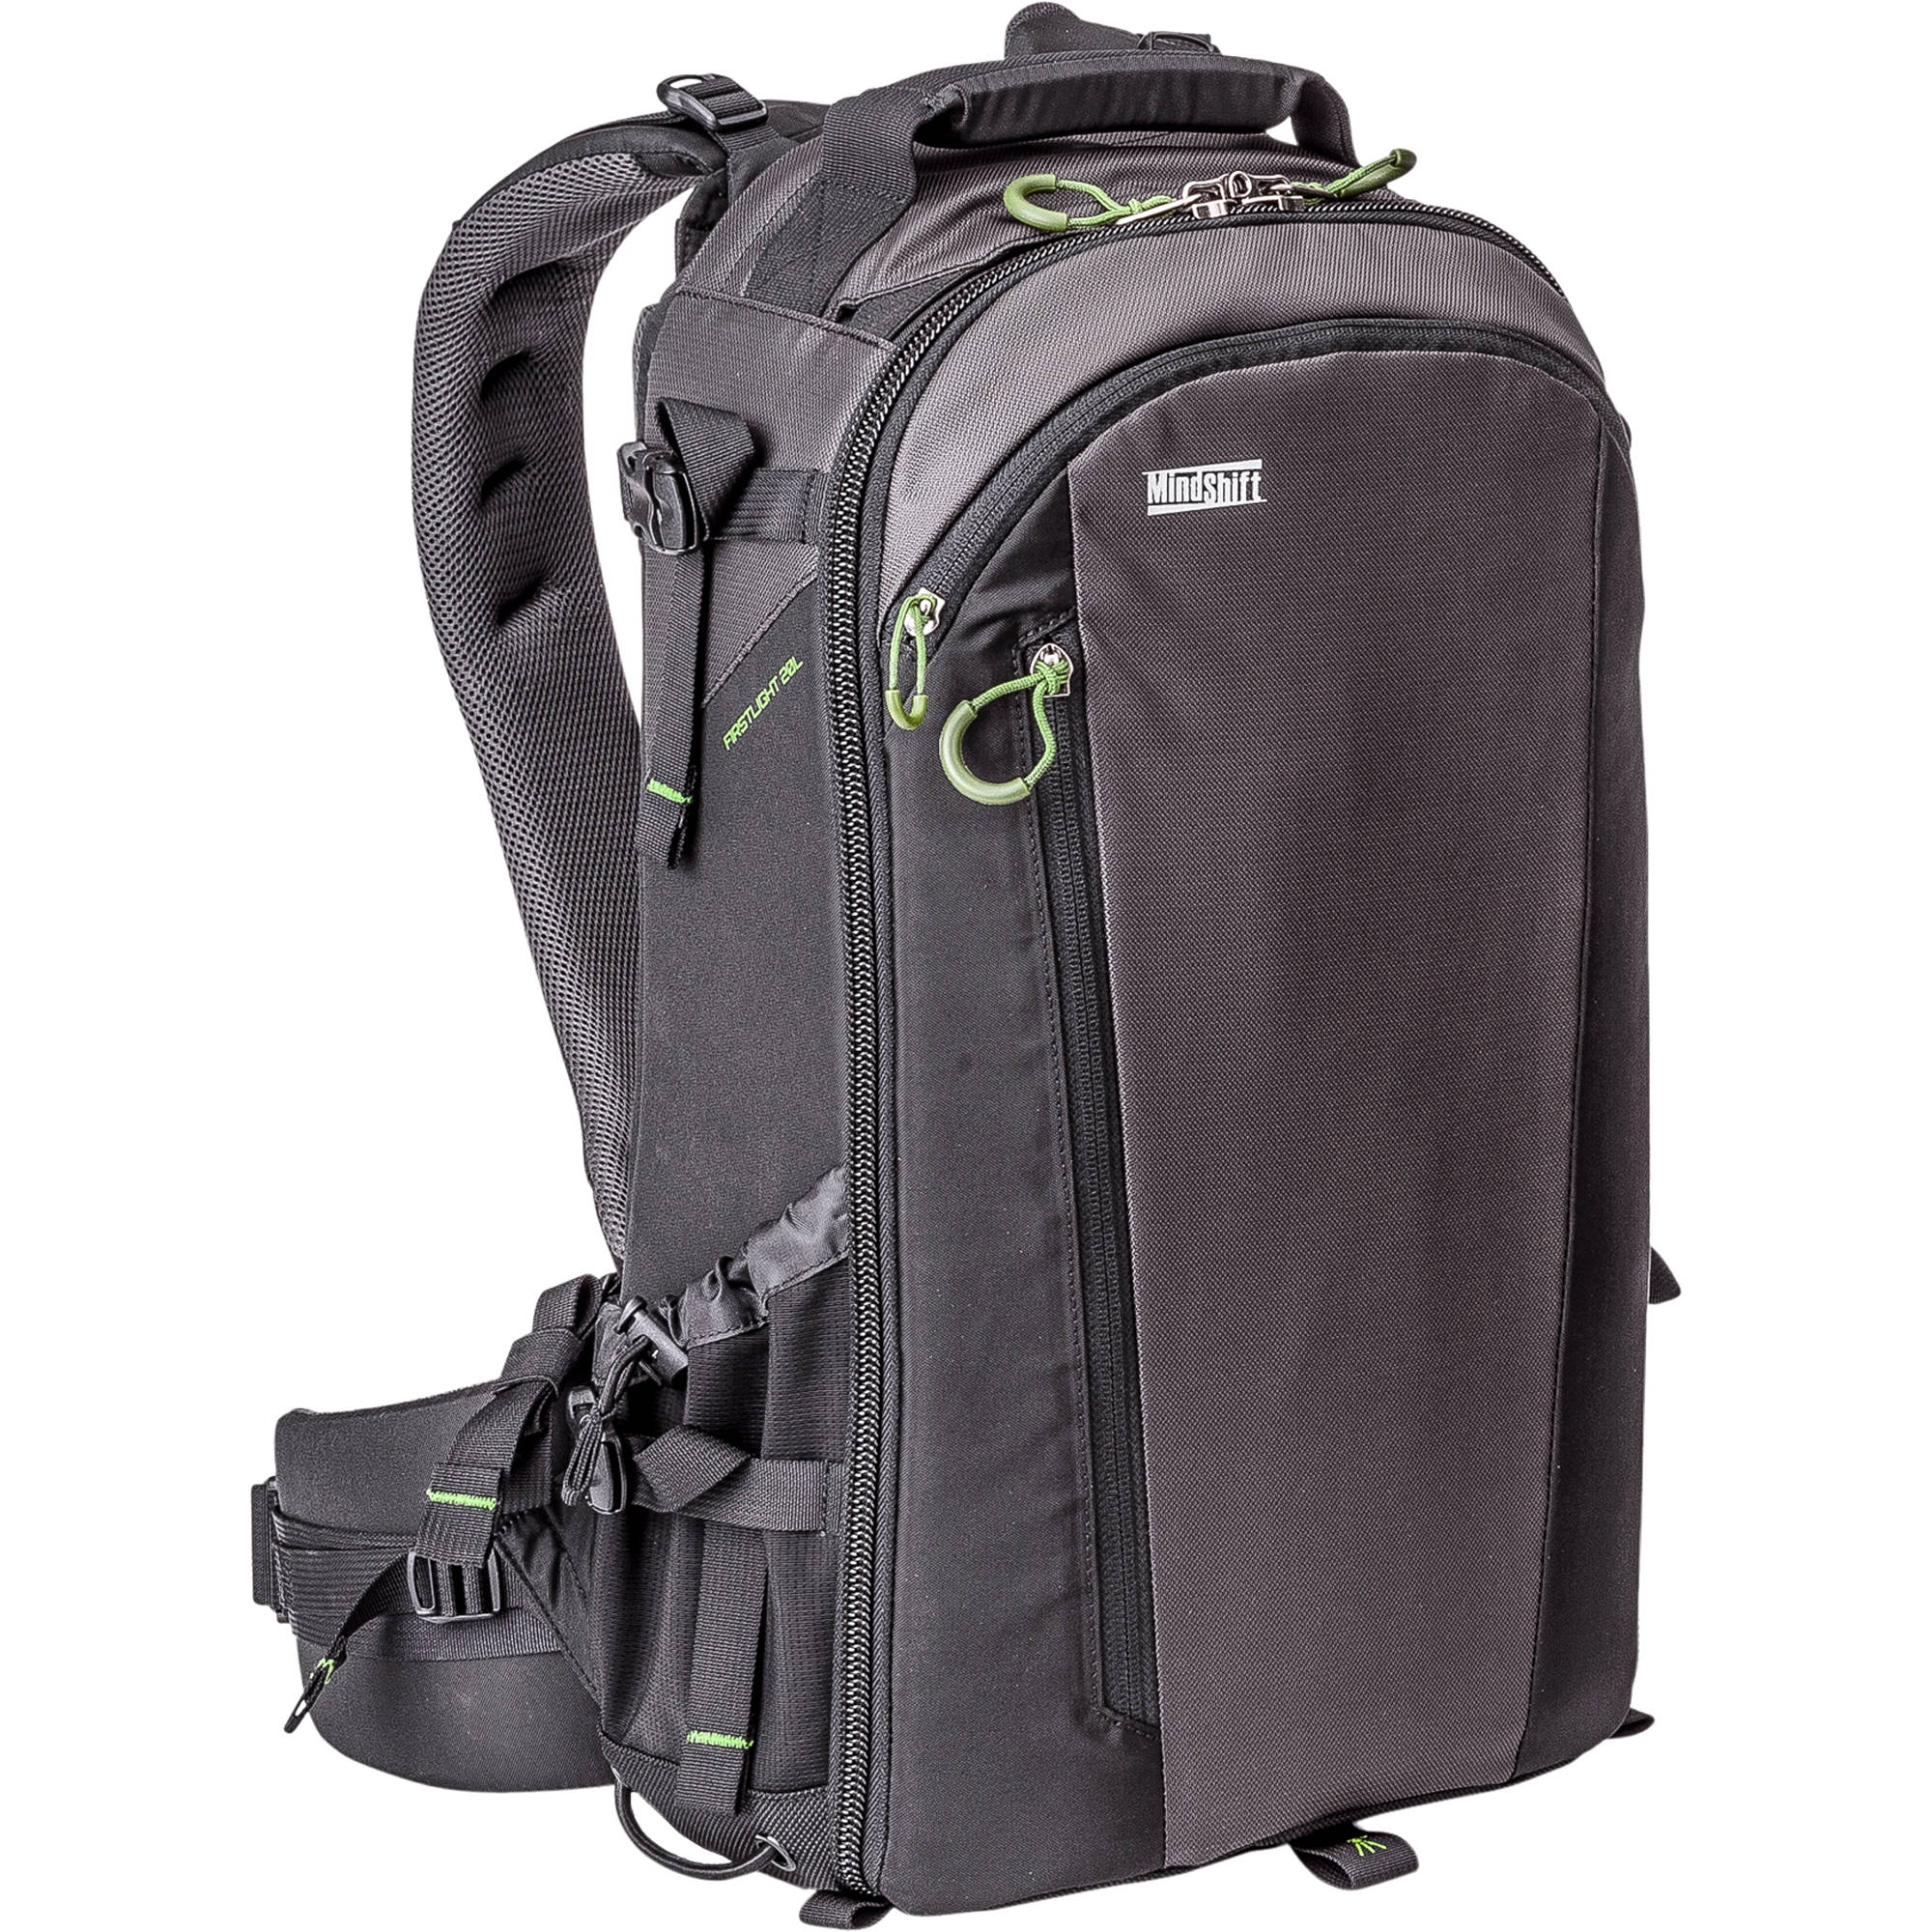 Captivating MindShift Gear FirstLight 20L DSLR U0026 Laptop Backpack (Charcoal) Good Ideas